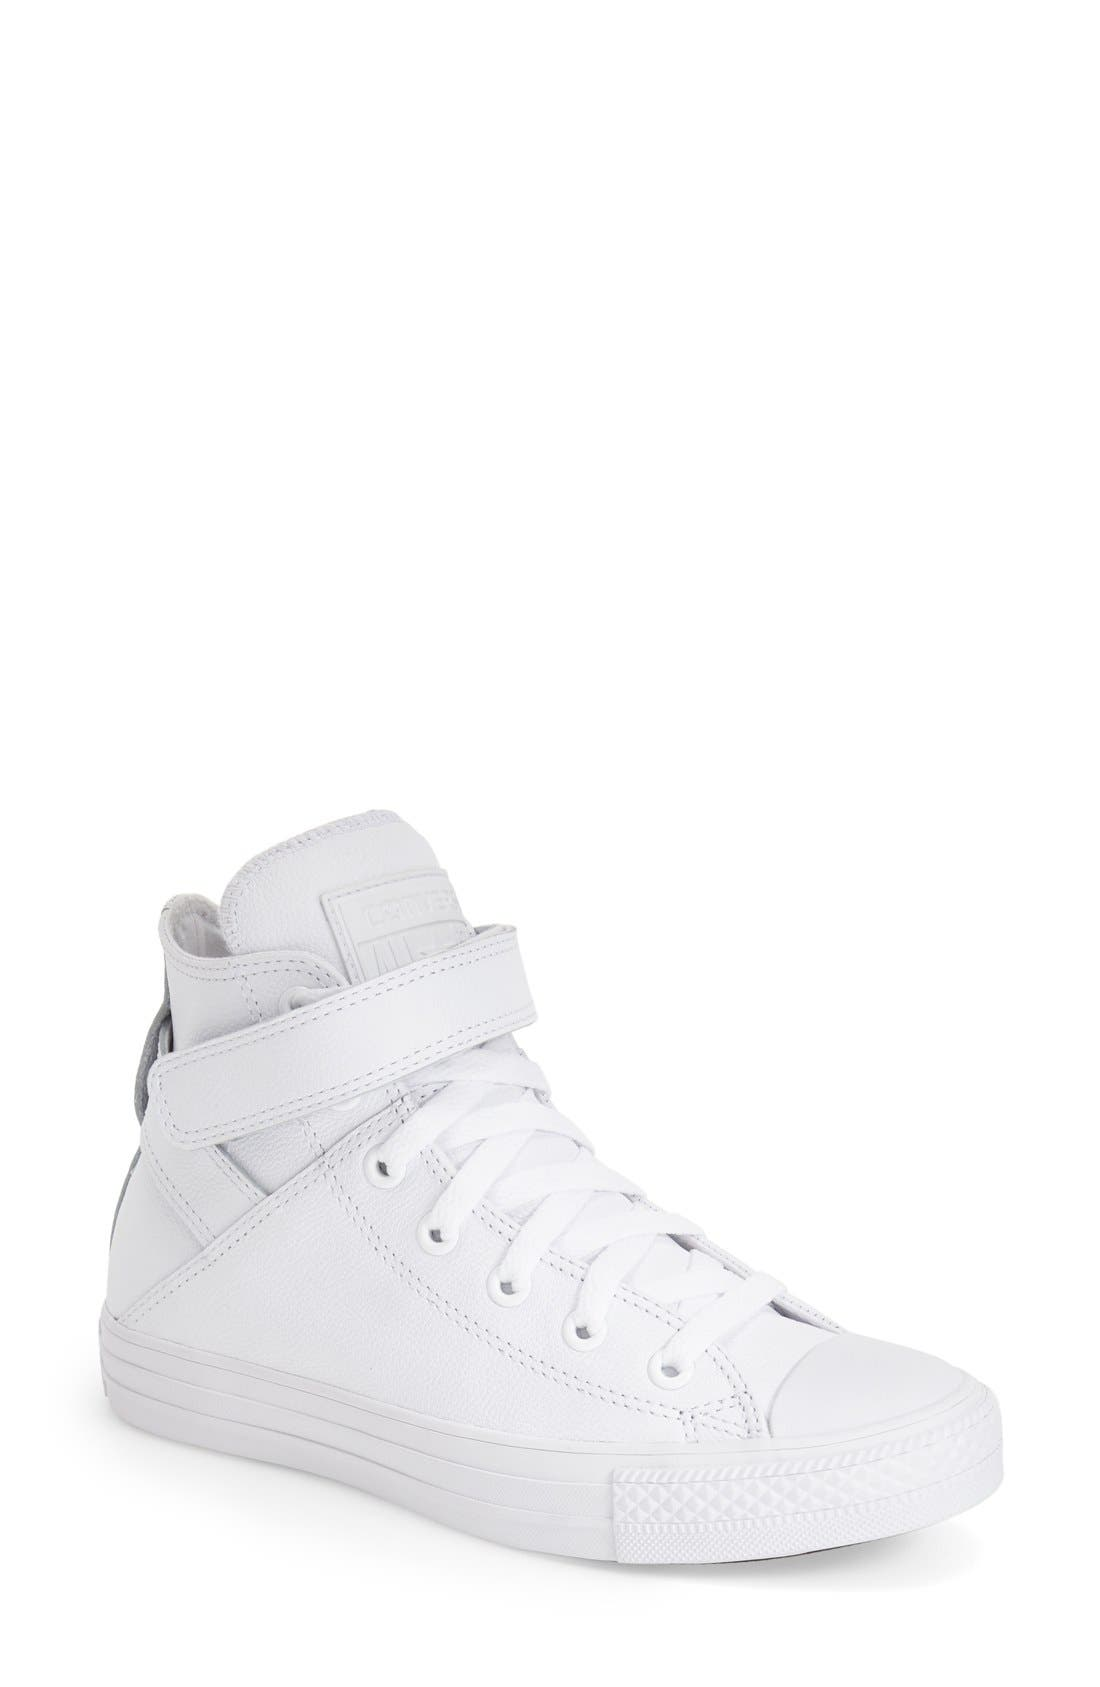 Alternate Image 1 Selected - Converse Chuck Taylor® All Star® 'Brea' Leather High Top Sneaker (Women)